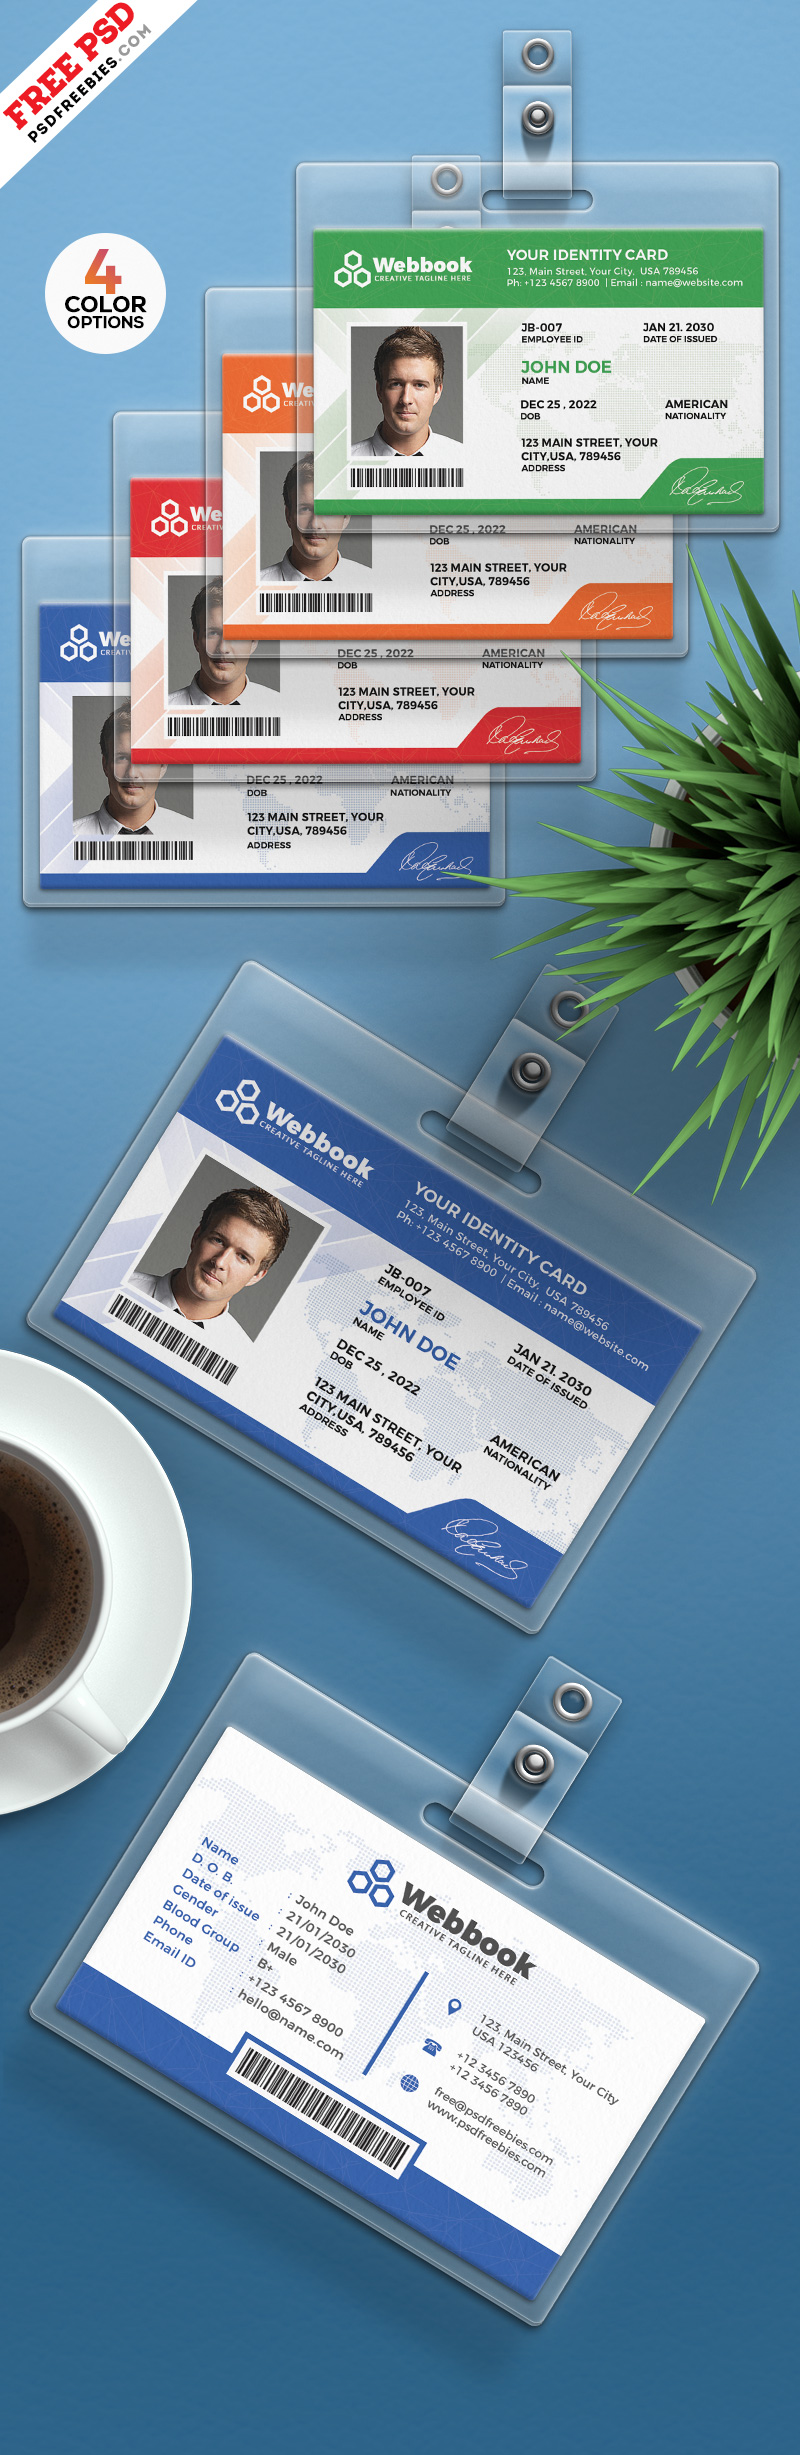 Free ID Card Template PSD Set